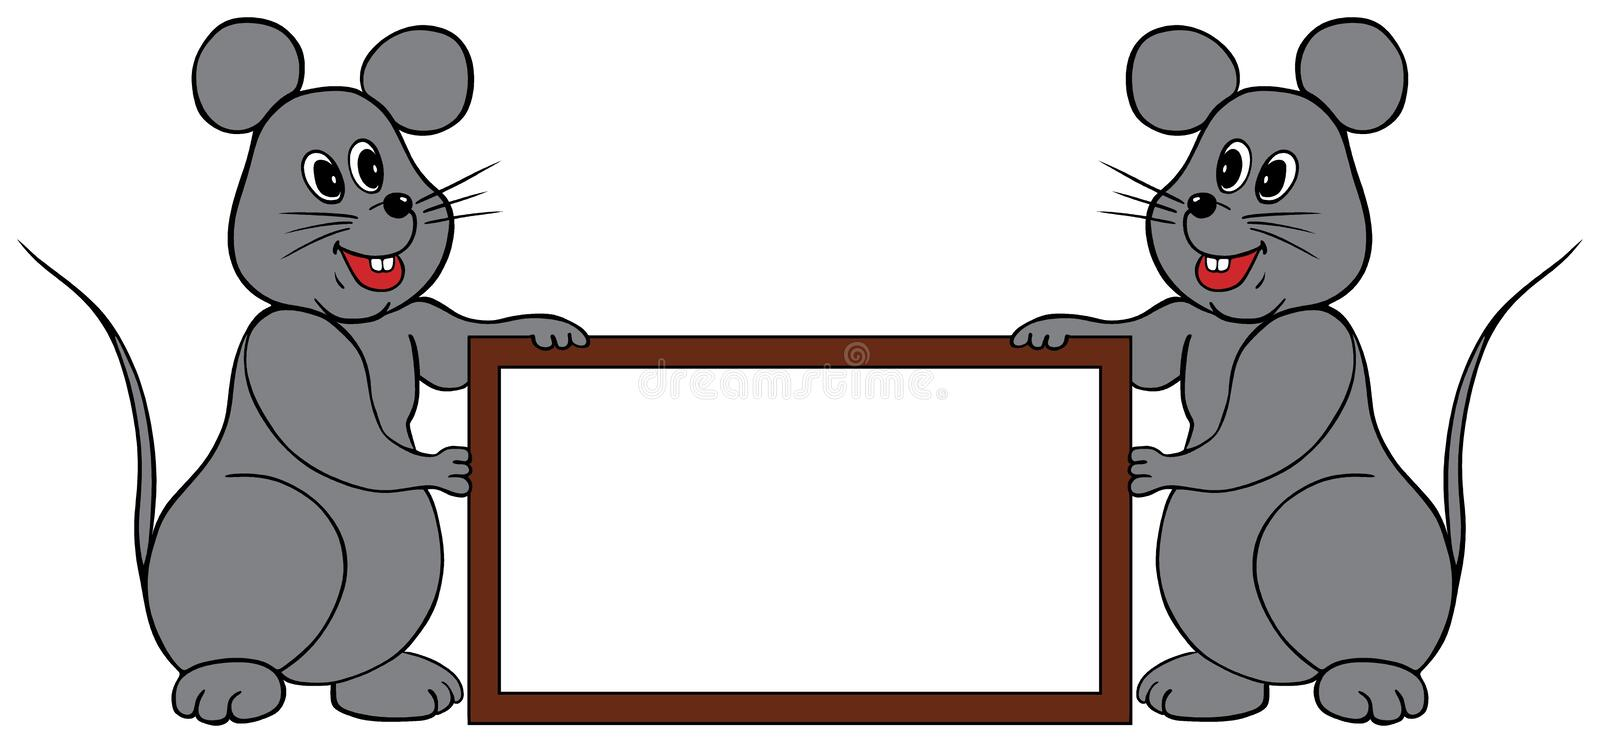 Mice frame. Two mice holding a frame to write any words you'd like vector illustration